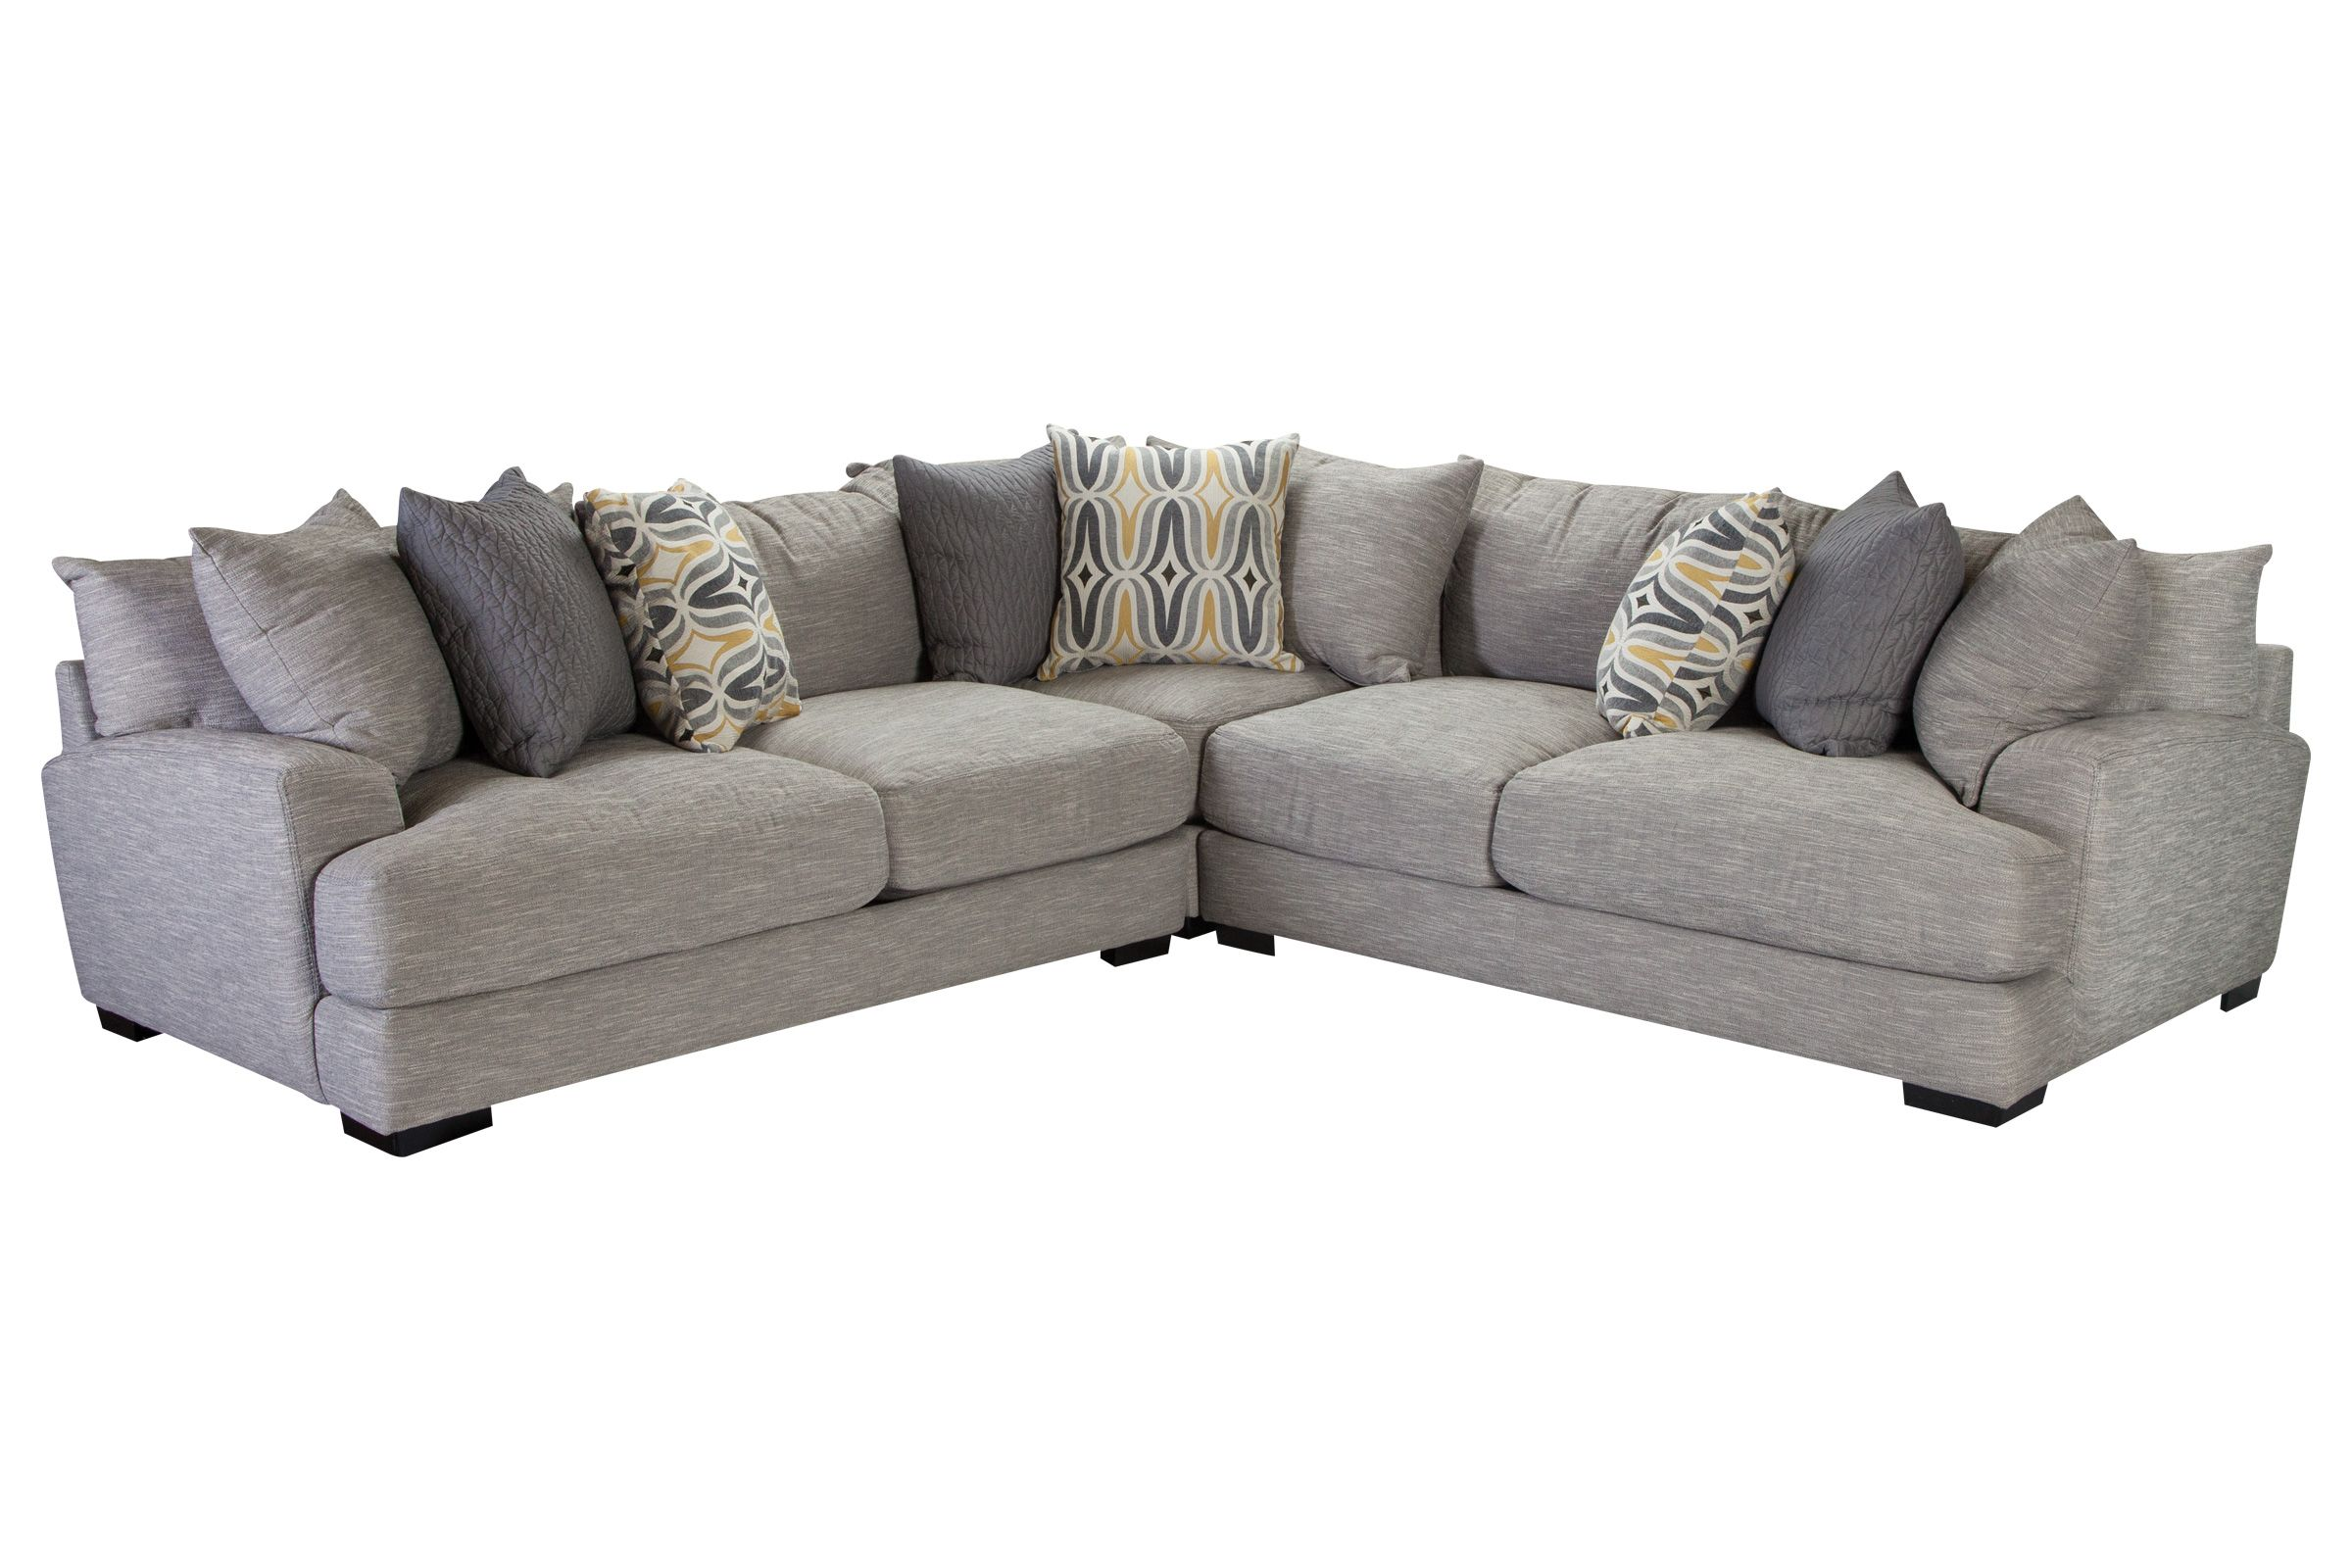 Barton 3 Piece Sectional